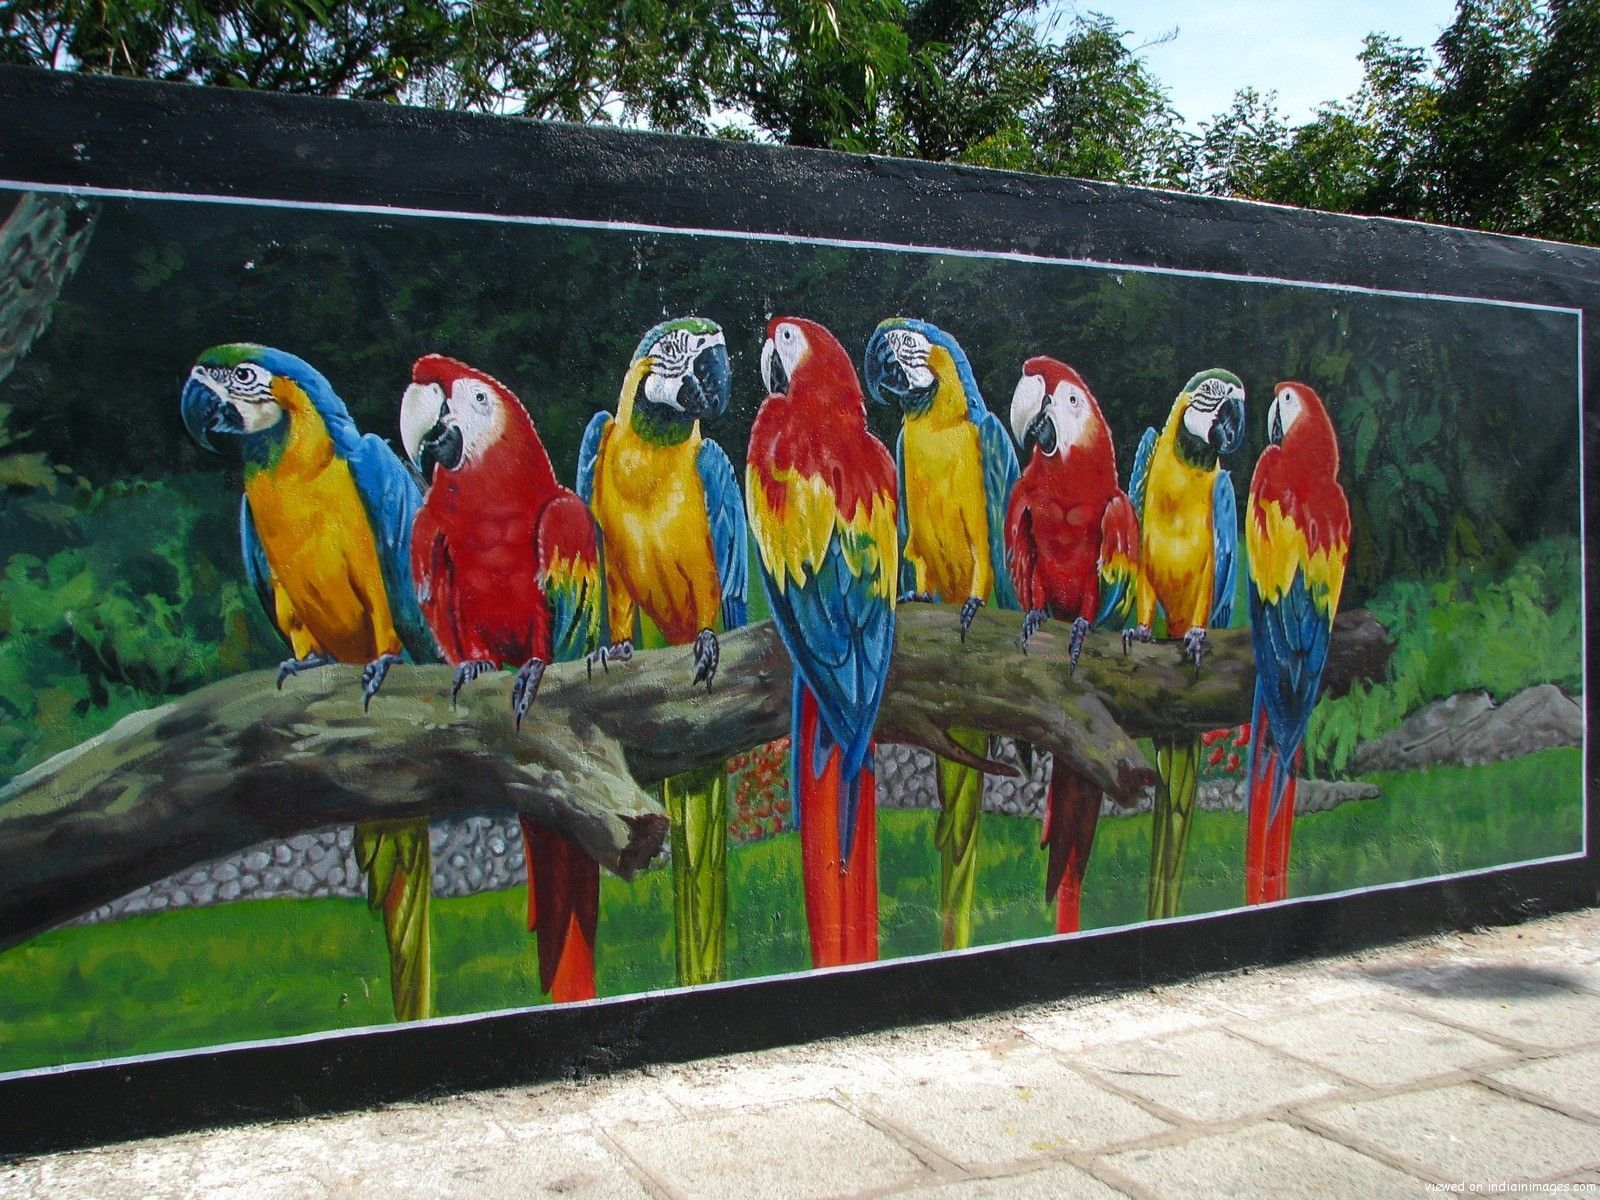 Outside Wall Mural Ideas   Wall Murals Are Large Sized , Scenic Graphics,  Which Are Affixed To Your Wall. The Murals Have